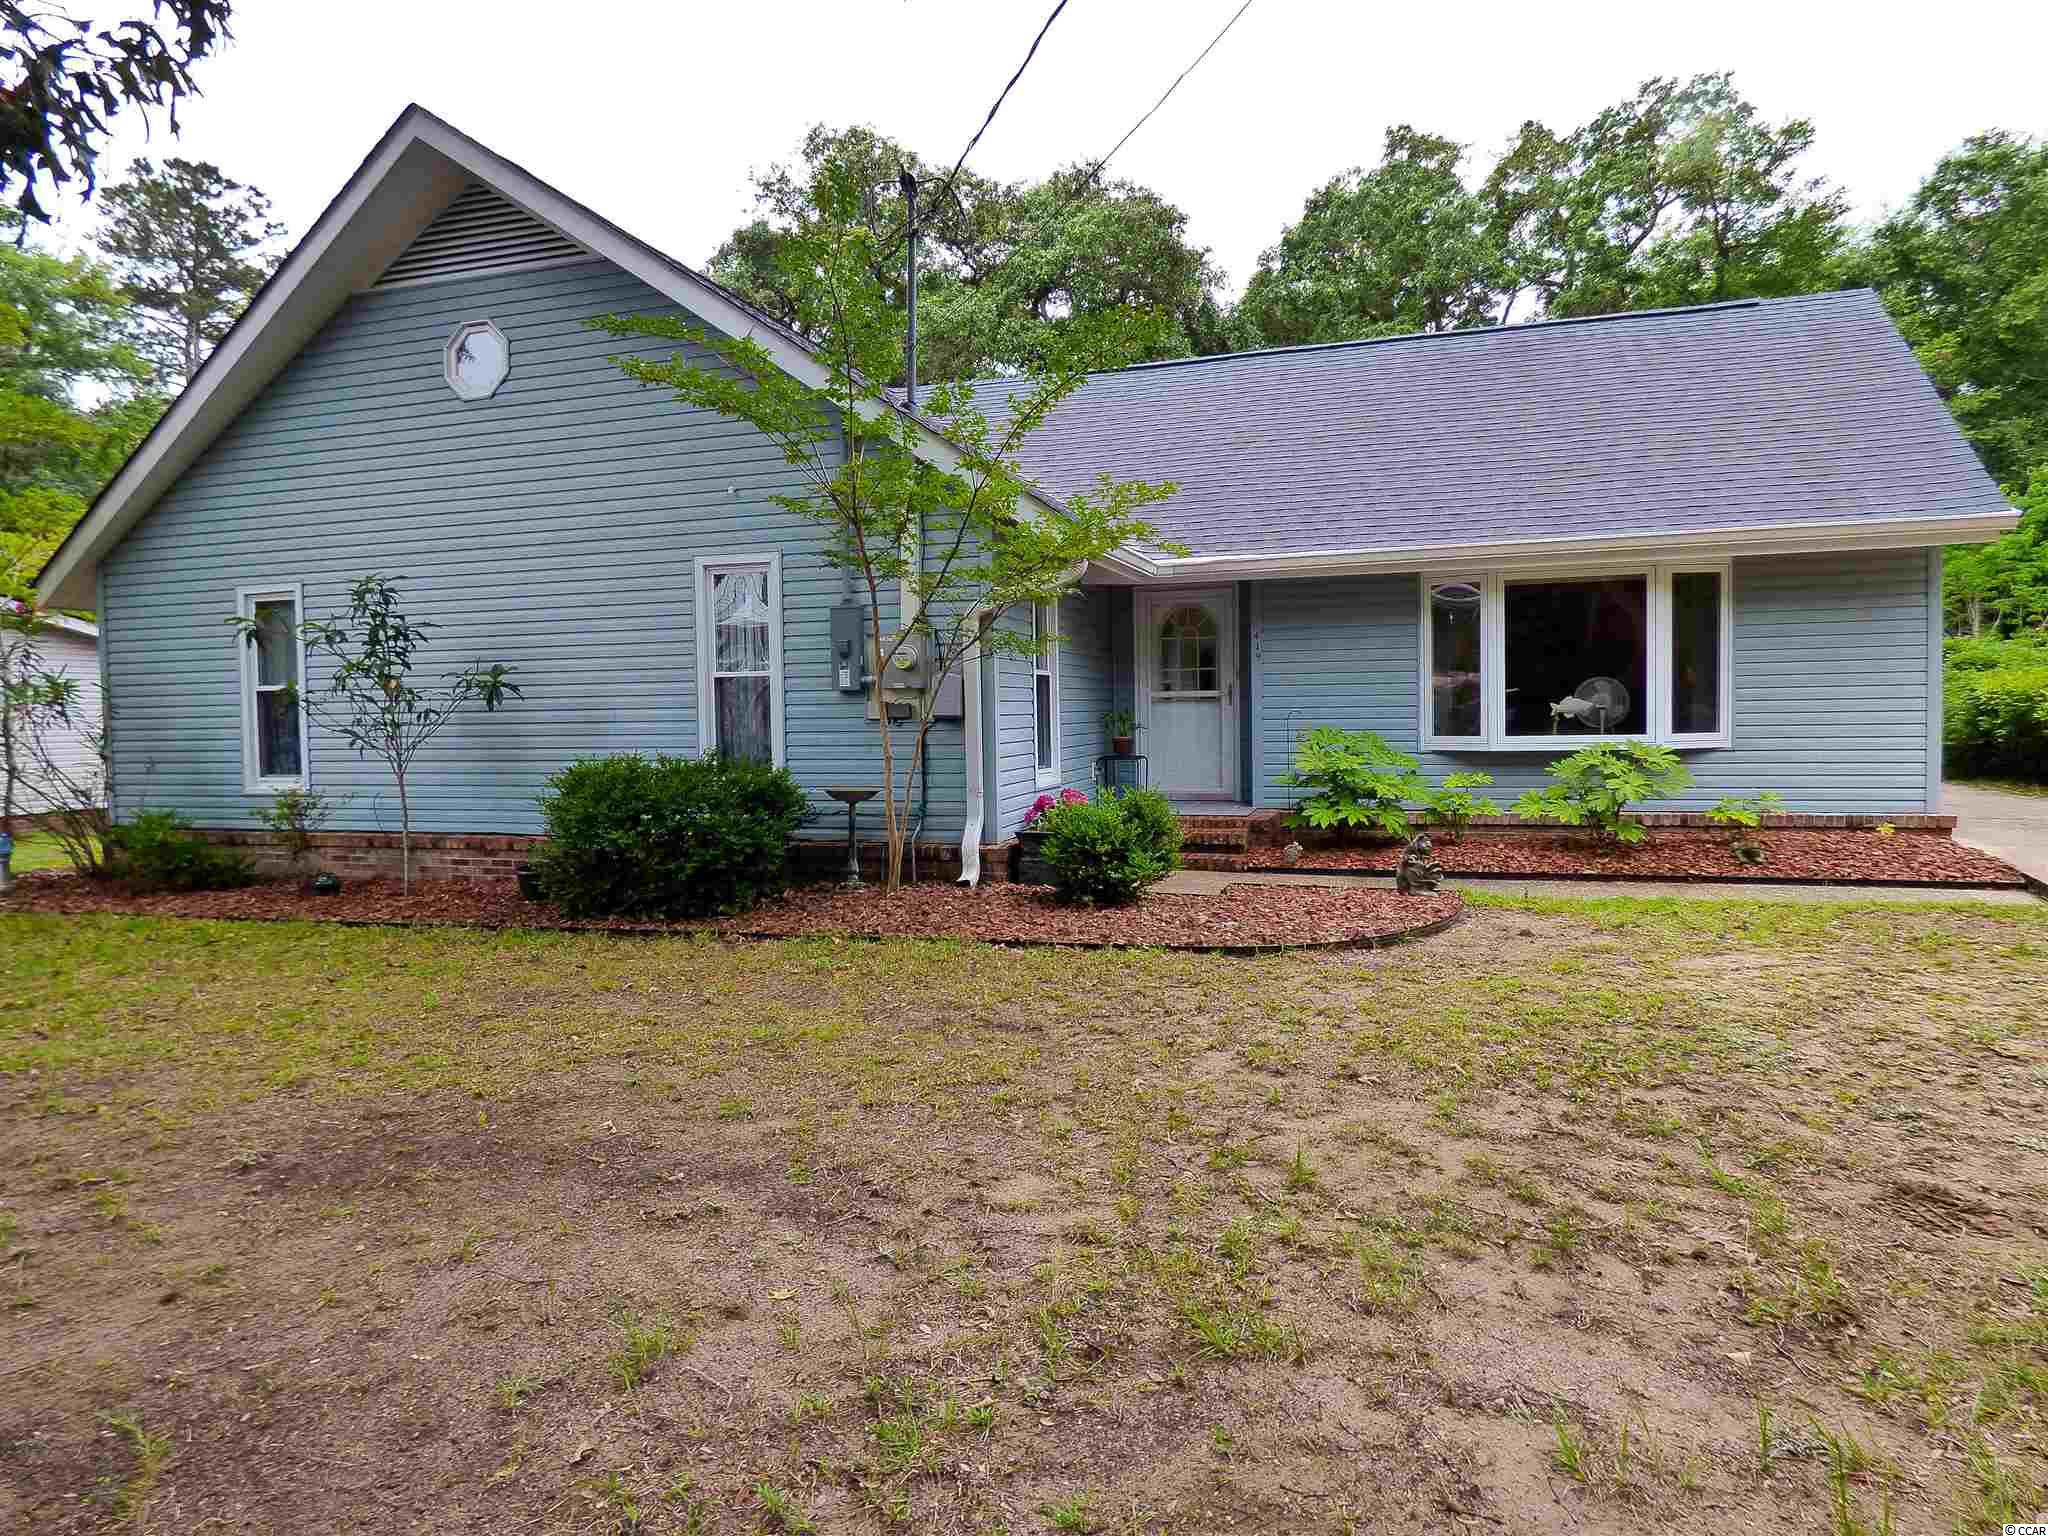 This 4 bedroom 2 bath home is 4 blocks from the ocean and has a salt generator filtration system 12X24 inground pool in the back yard. Bring your boats or rv's as there is NO hoa and plenty of space on this .24 acre lot. There are wood and tile floors throughout. The kitchen have updated granite counter tops with tile backsplash and stainless steel appliances. There is a powered detached shed in the back and the home's attic is floored and shelved for additional storage. The 4th bedroom includes a built in murphy bed and desk. Lastly, the Carolina room is in the rear of the home over looking the pool and back yard.